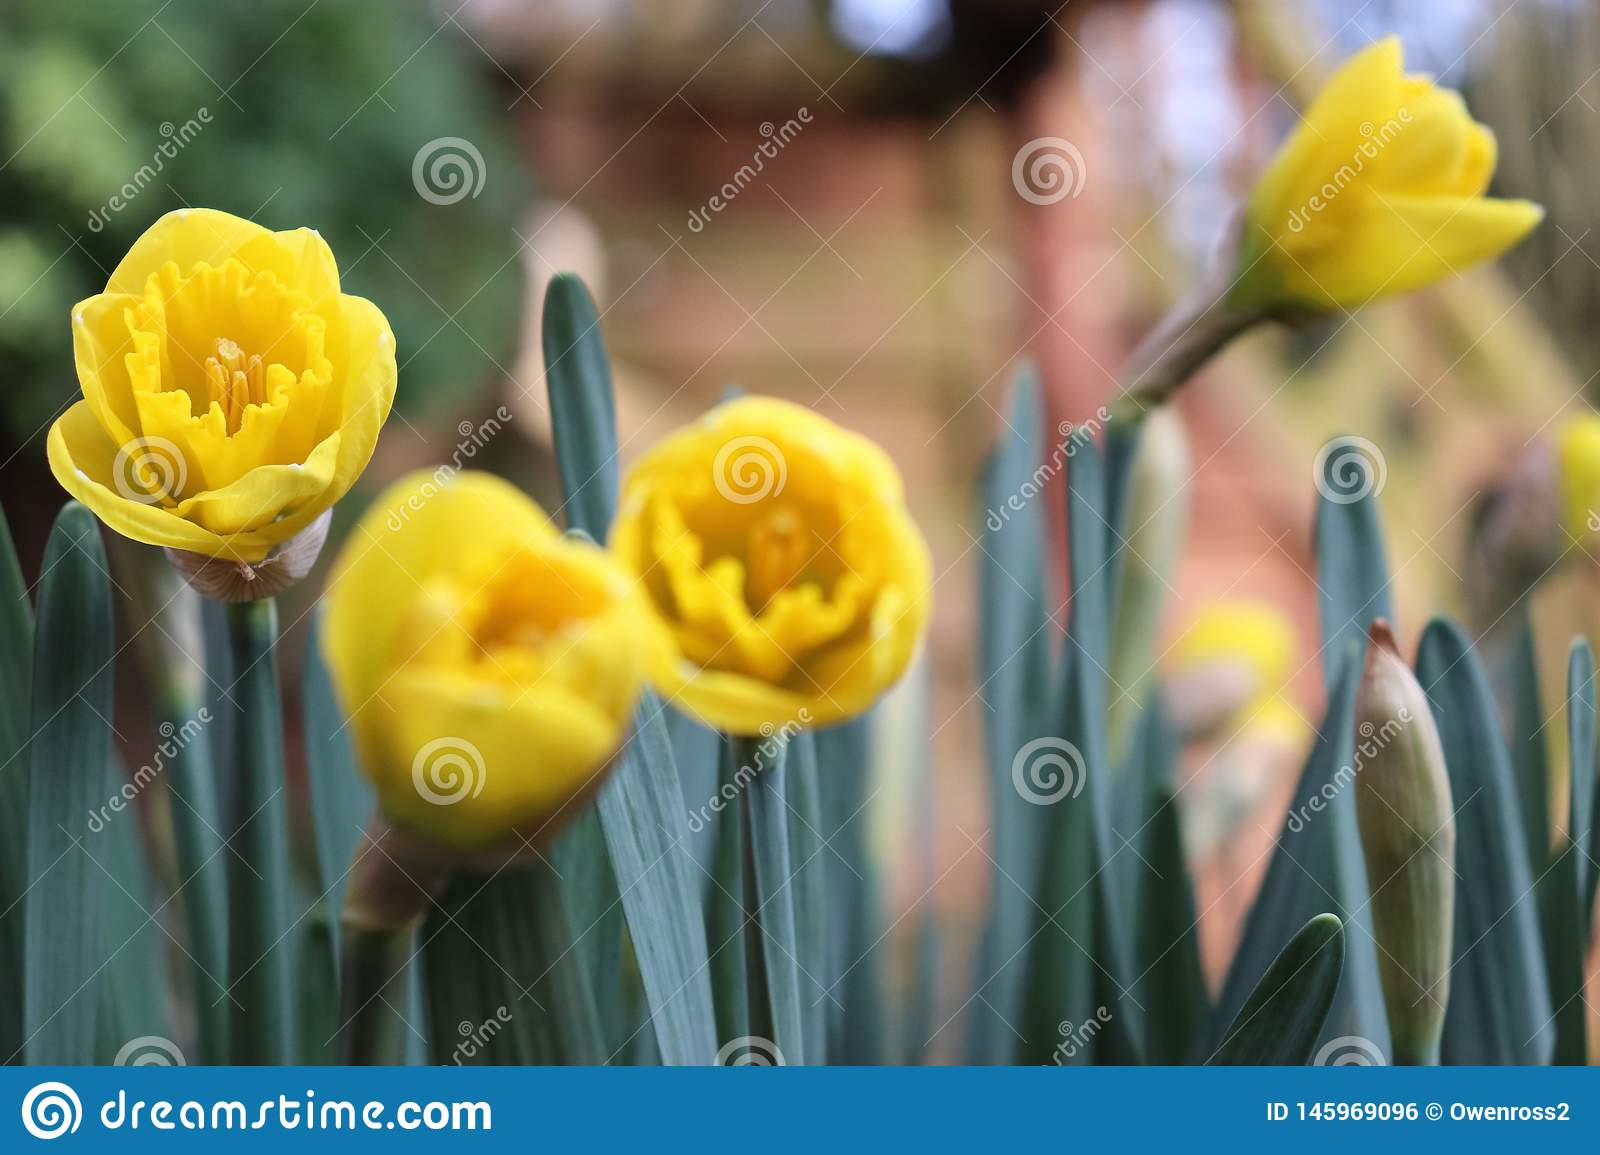 Yellow tulip with green leaves in the background